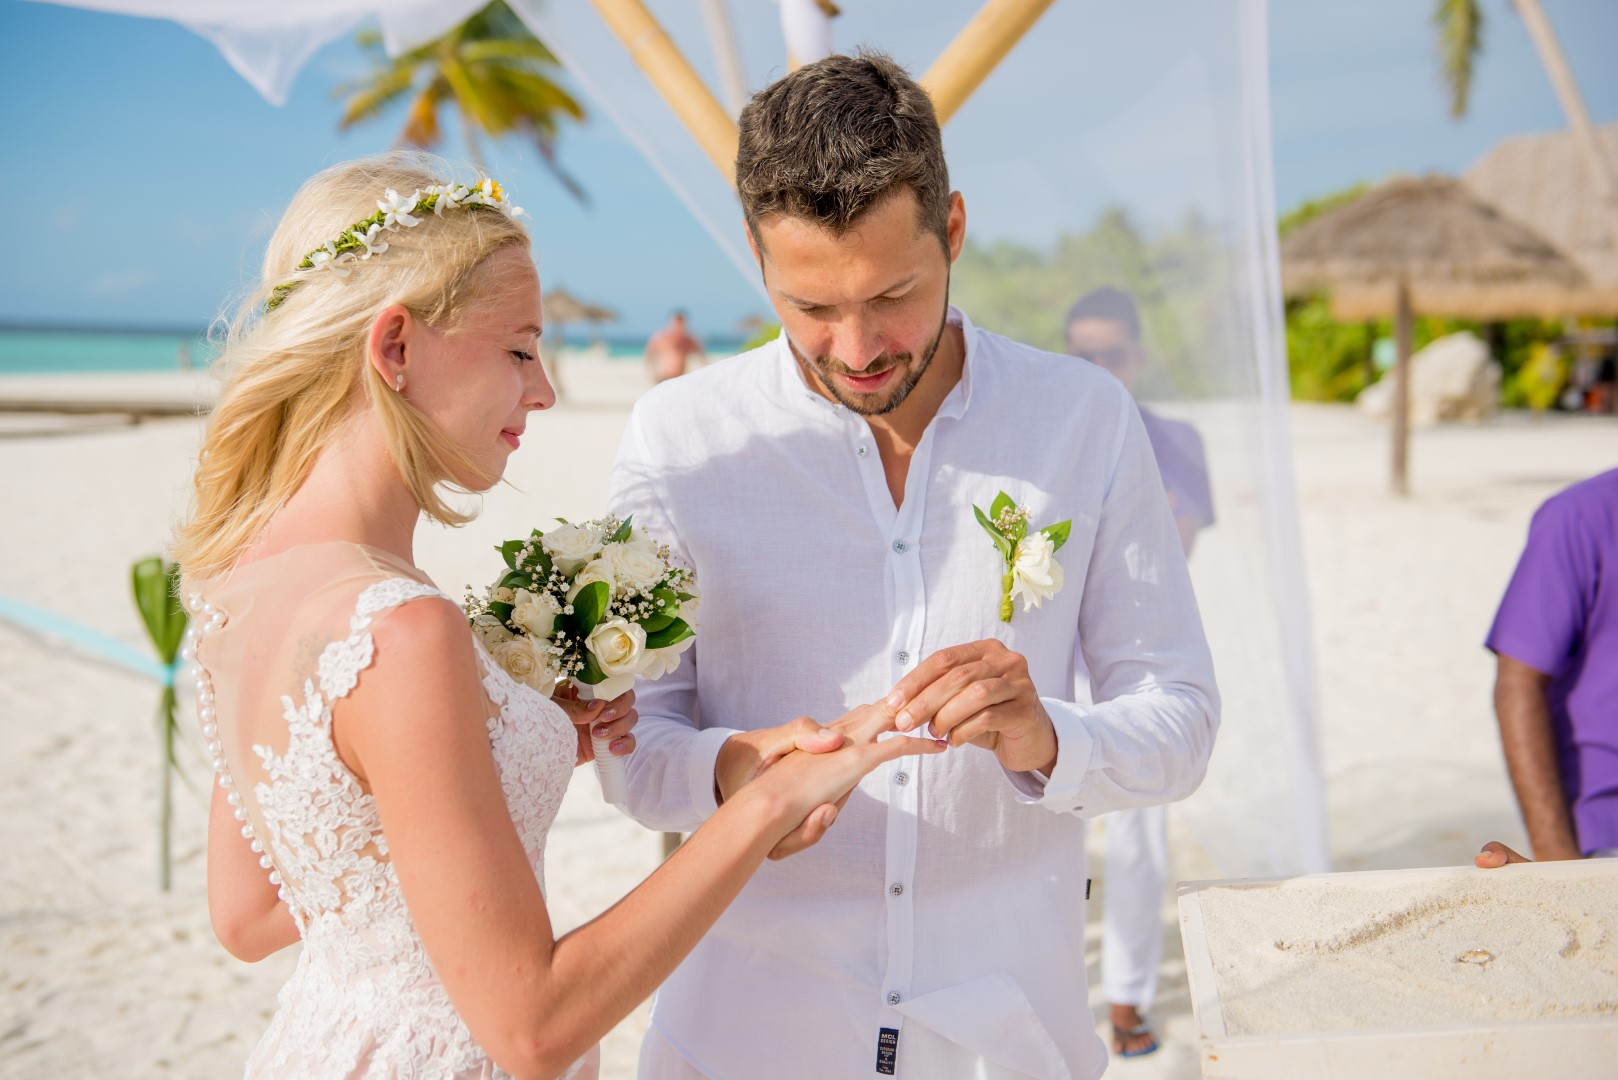 Getting Married in the Maldives: Make Your Dream a Reality